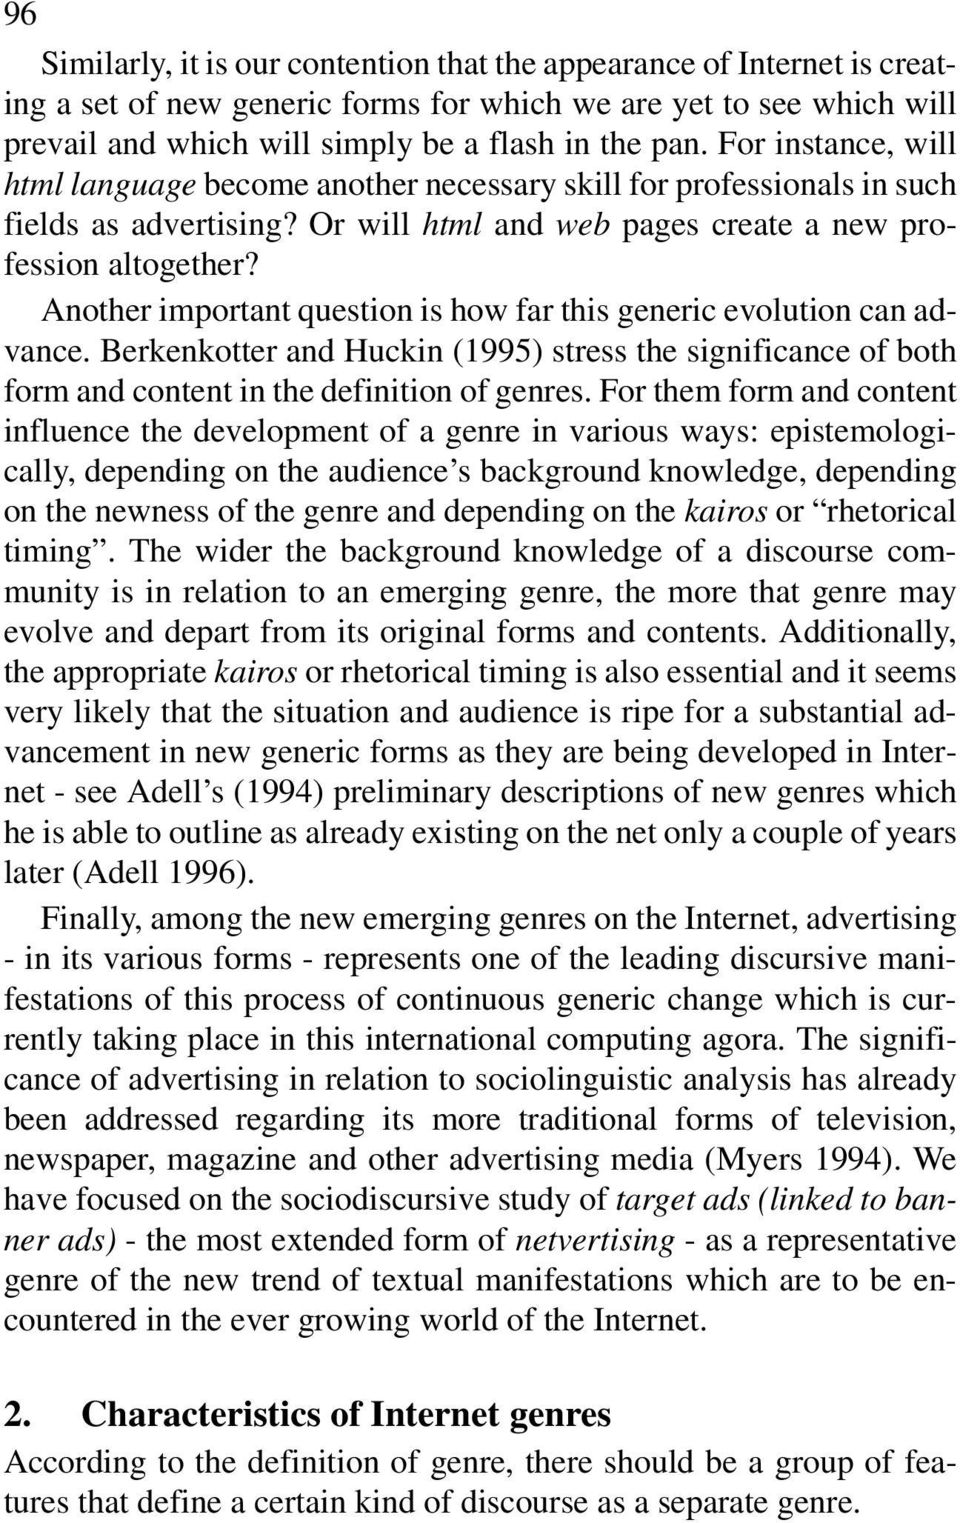 Another important question is how far this generic evolution can advance. Berkenkotter and Huckin (1995) stress the significance of both form and content in the definition of genres.